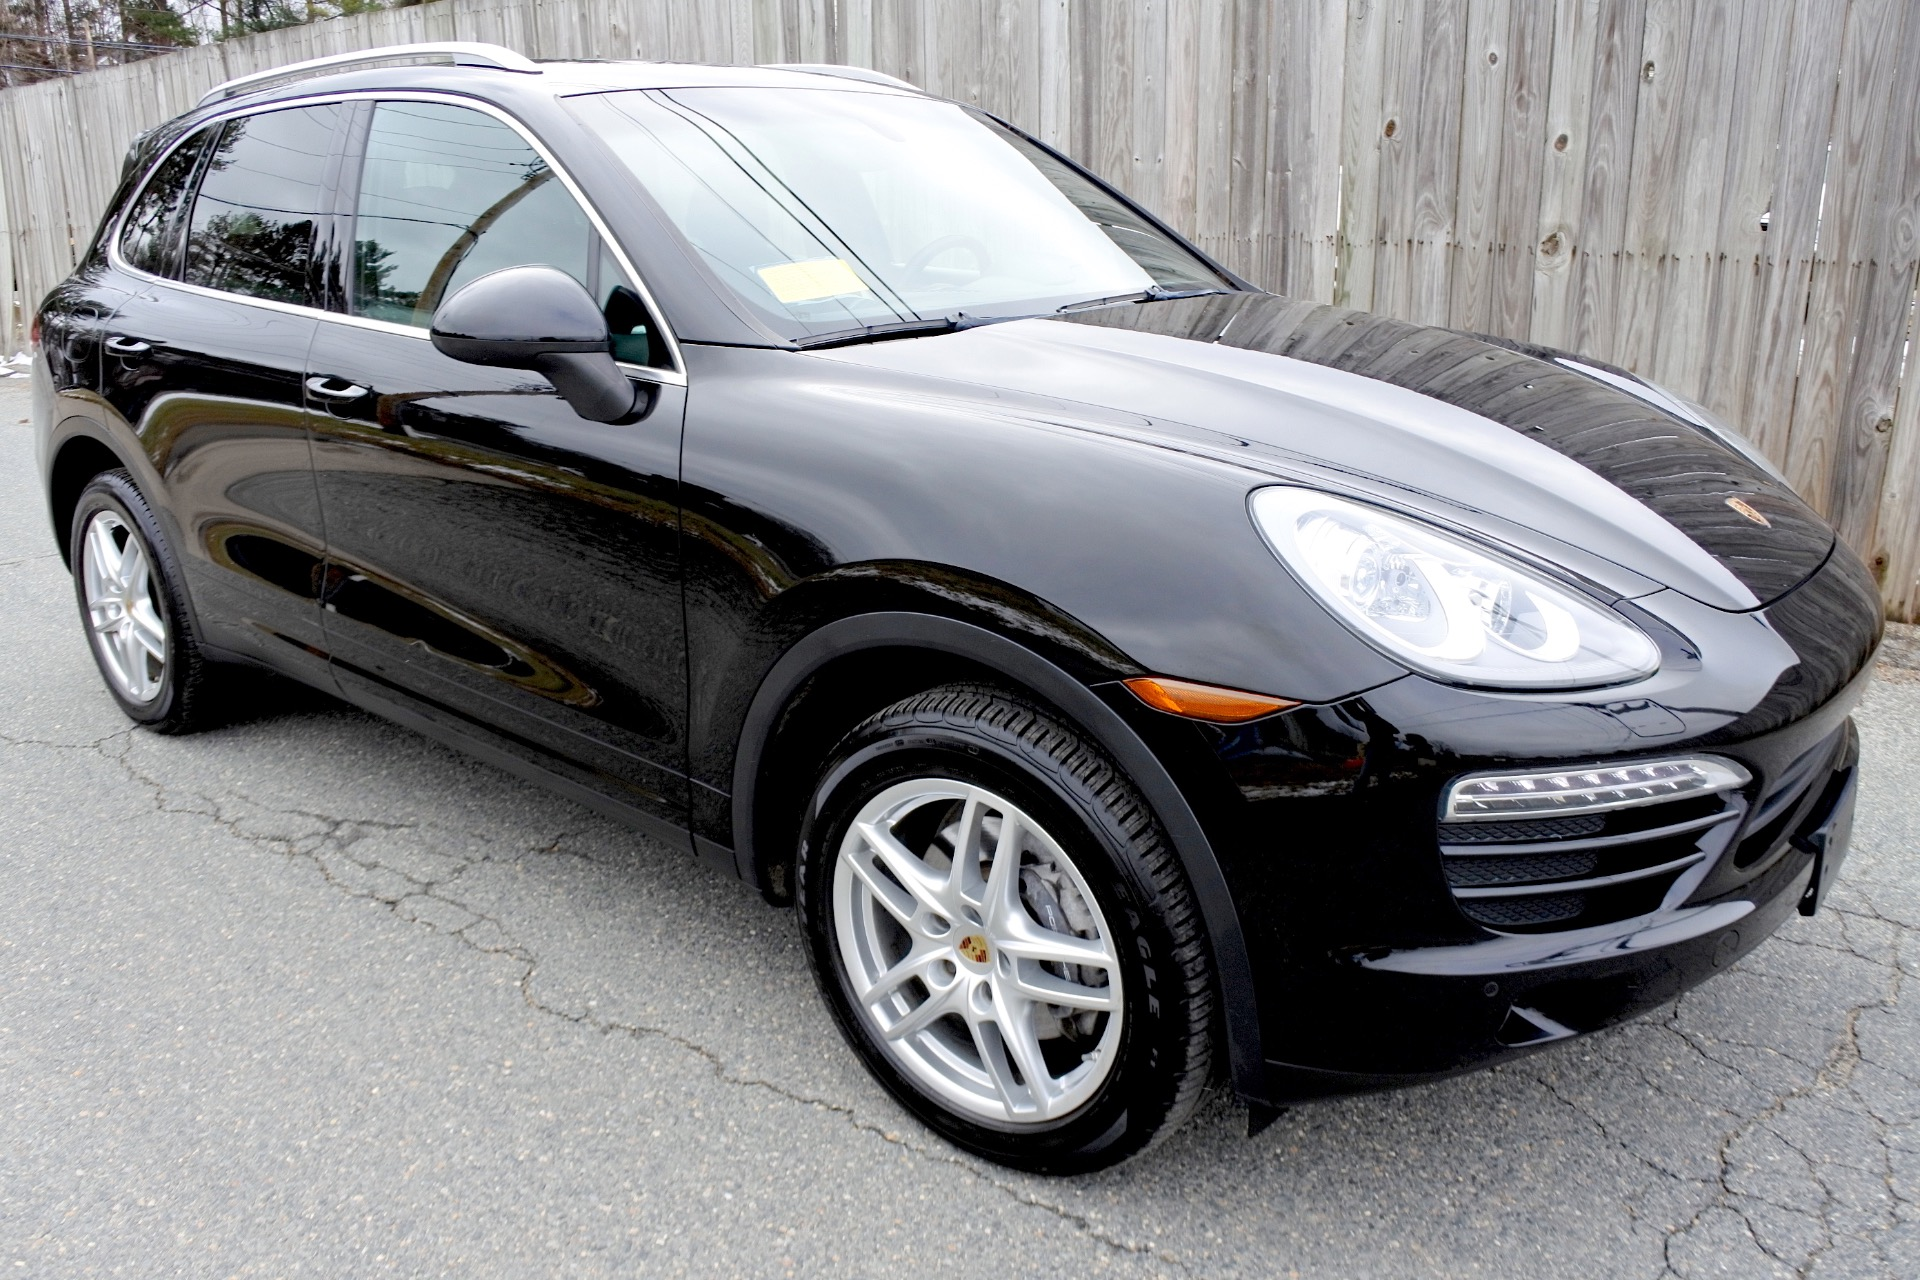 Used 2014 Porsche Cayenne AWD Used 2014 Porsche Cayenne AWD for sale  at Metro West Motorcars LLC in Shrewsbury MA 7